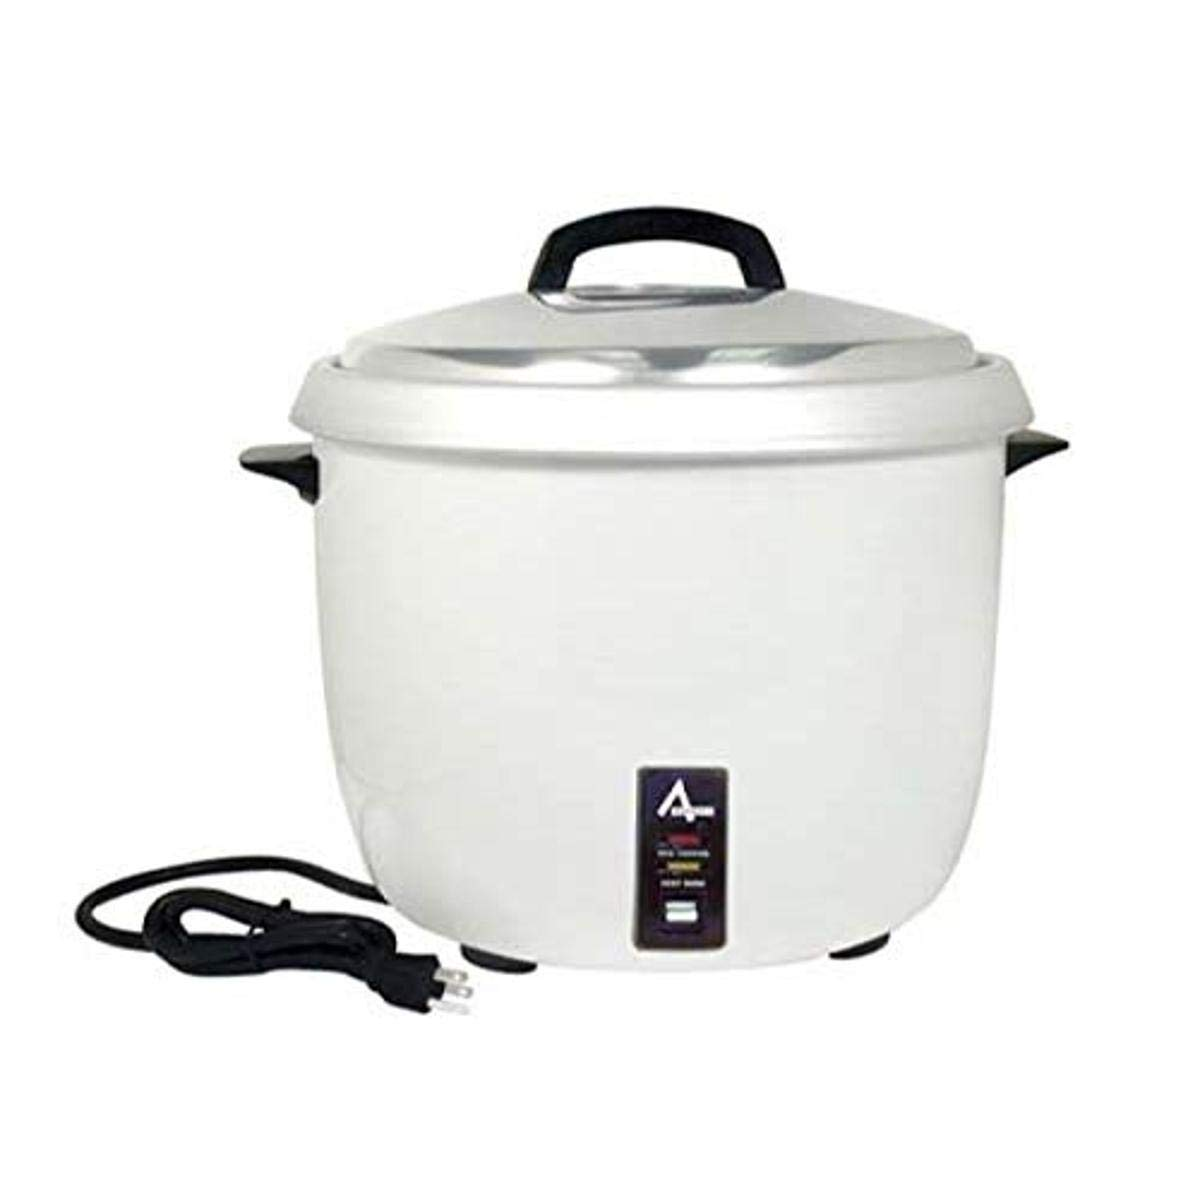 Adcraft RC-0030 30-Cup Rice Cooker, 1650-1800w, 110-120v, NSF